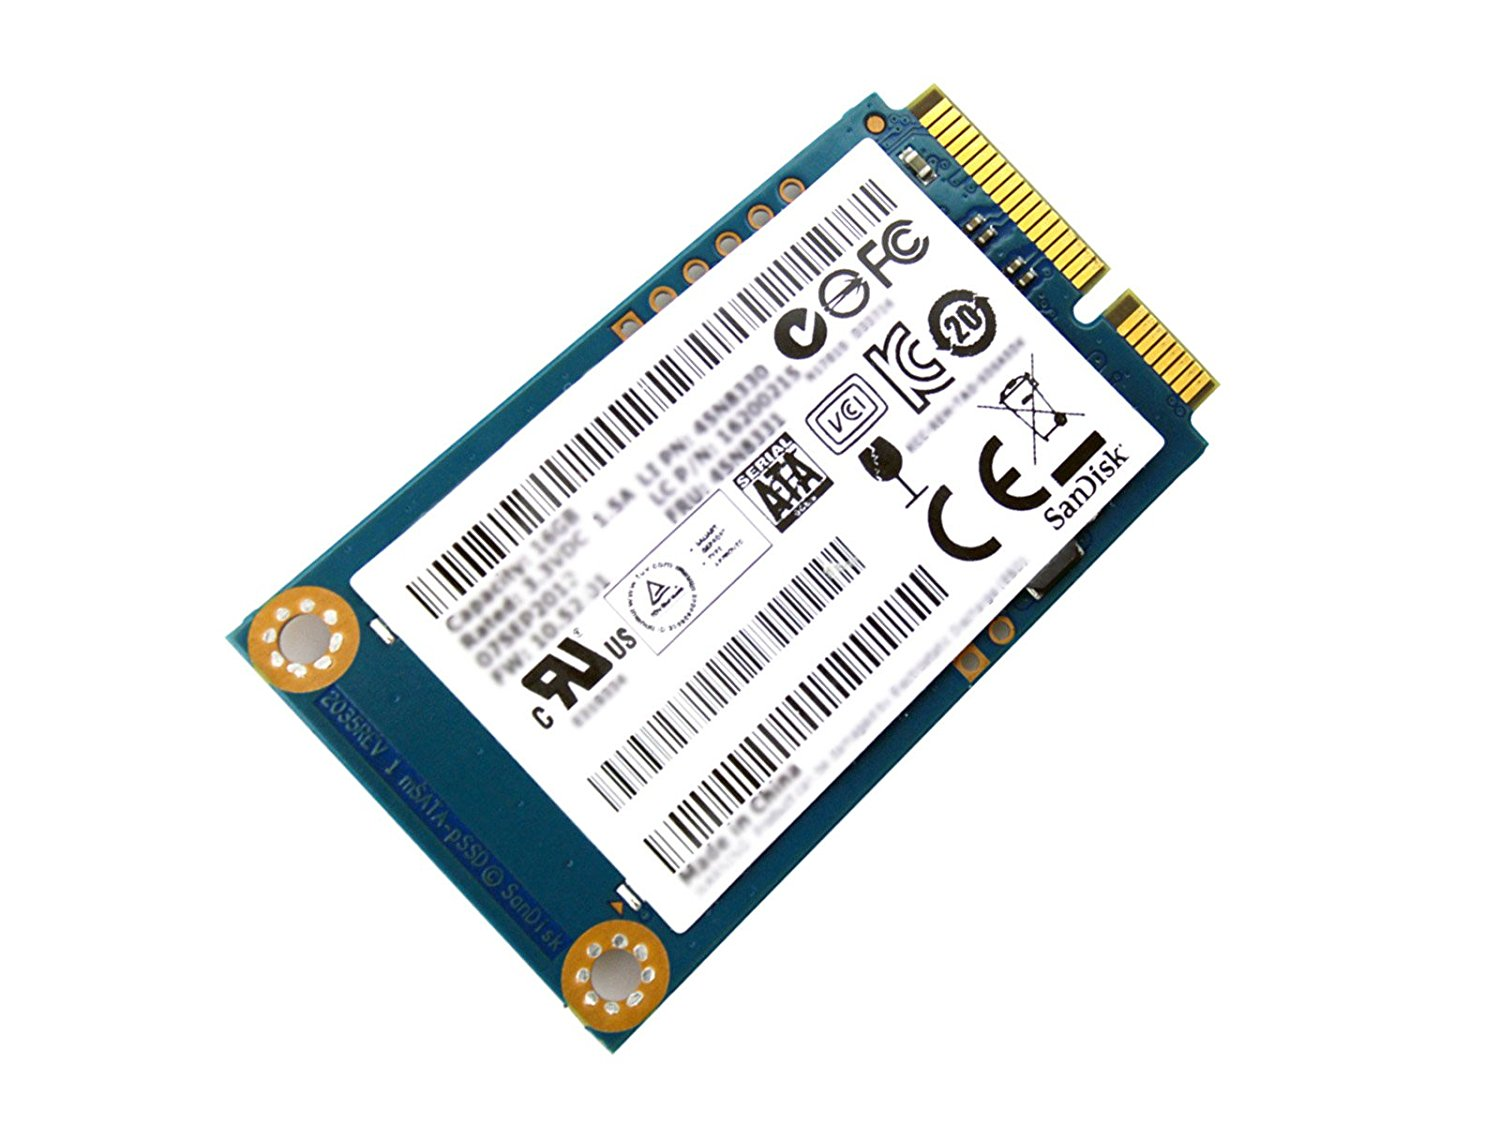 Cheap 1 8 Harddisk Find Deals On Line At Alibabacom Orico 6619us3 1bay Docking Usb 30 Get Quotations Sandisk U110 Series 32gb Ssd Hdd Mini Pci E Msata 6gb S Sdsa6dm